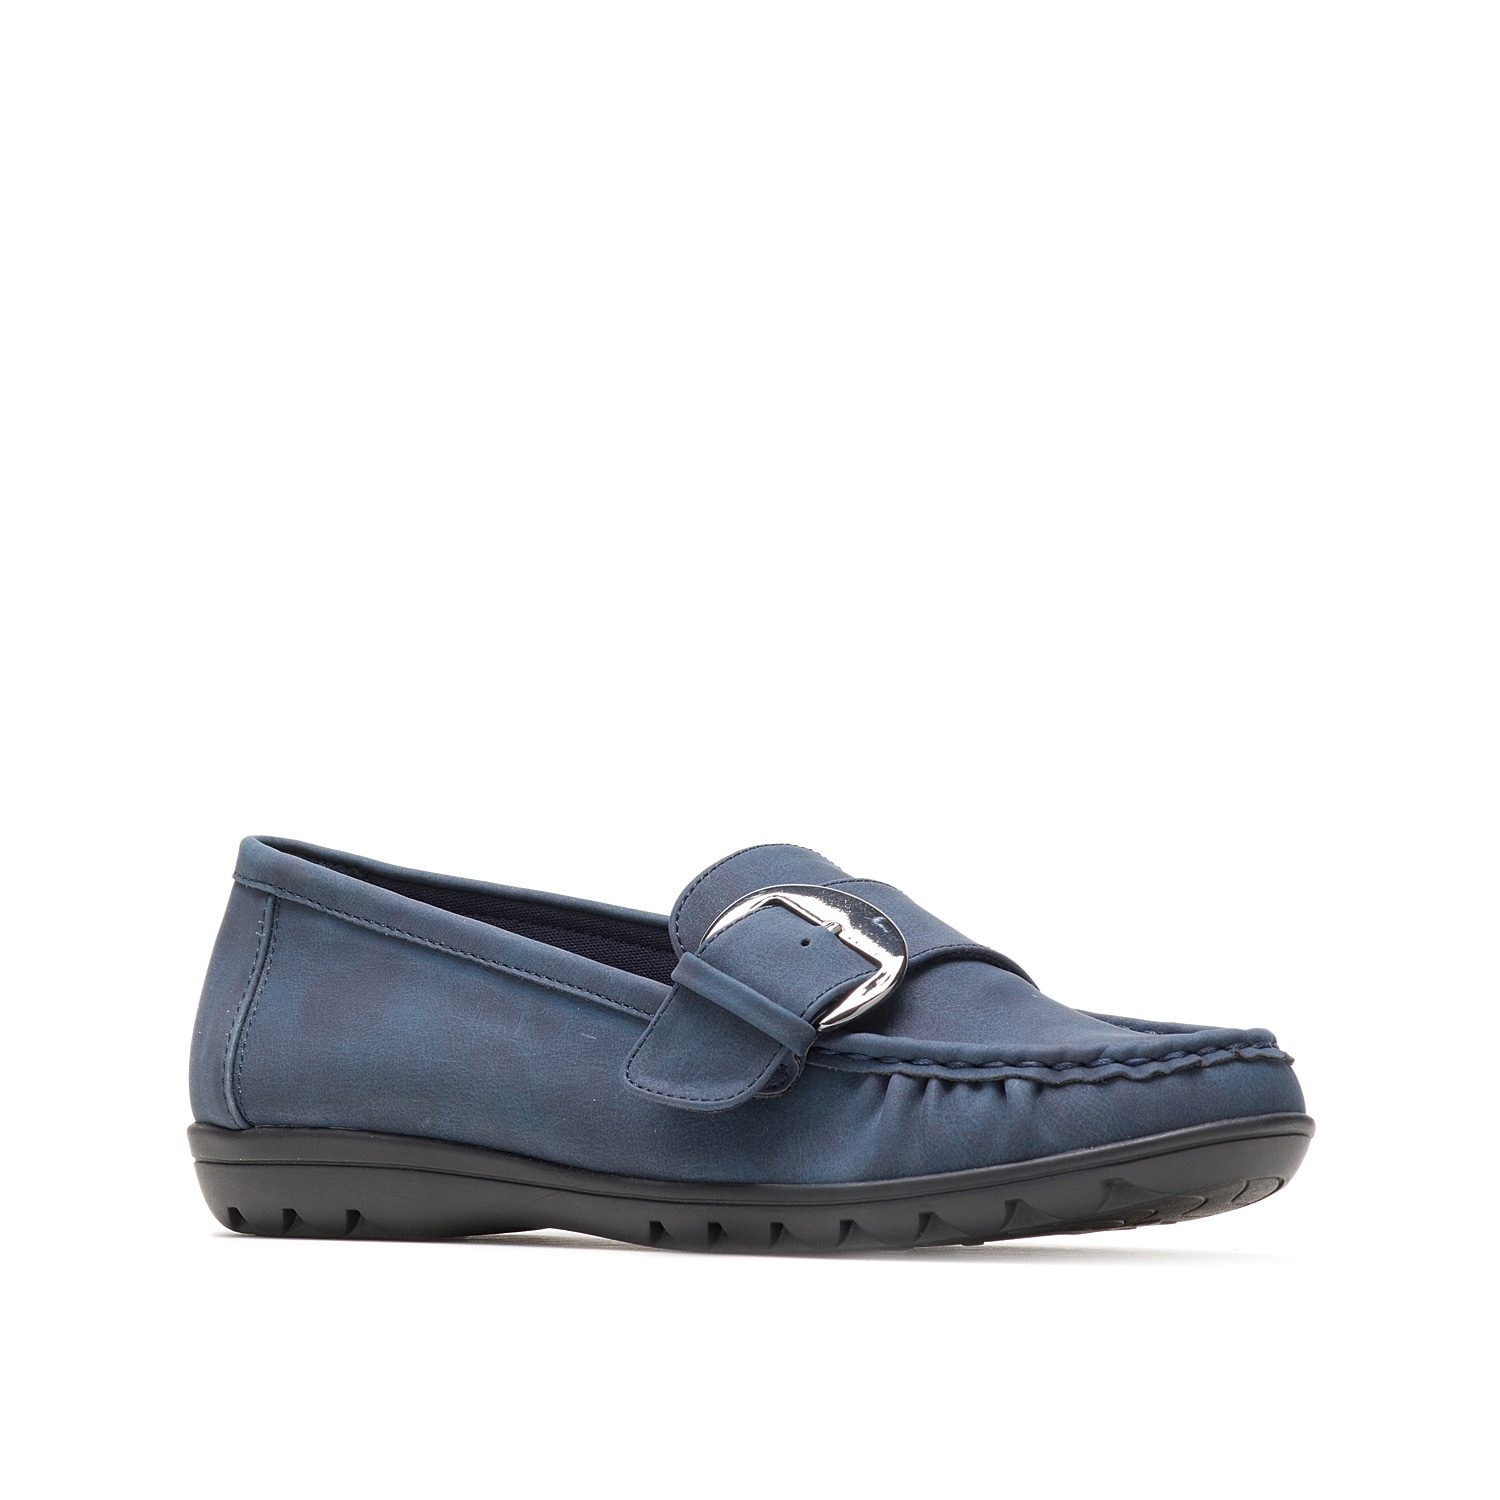 Styled with a moc-stitched toe and decorative buckle detail, the Vivid slip-on by Hush Puppies will be your go-to choice for casual days. This workday loafer includes memory foam footbed and a molded rubber outsole.